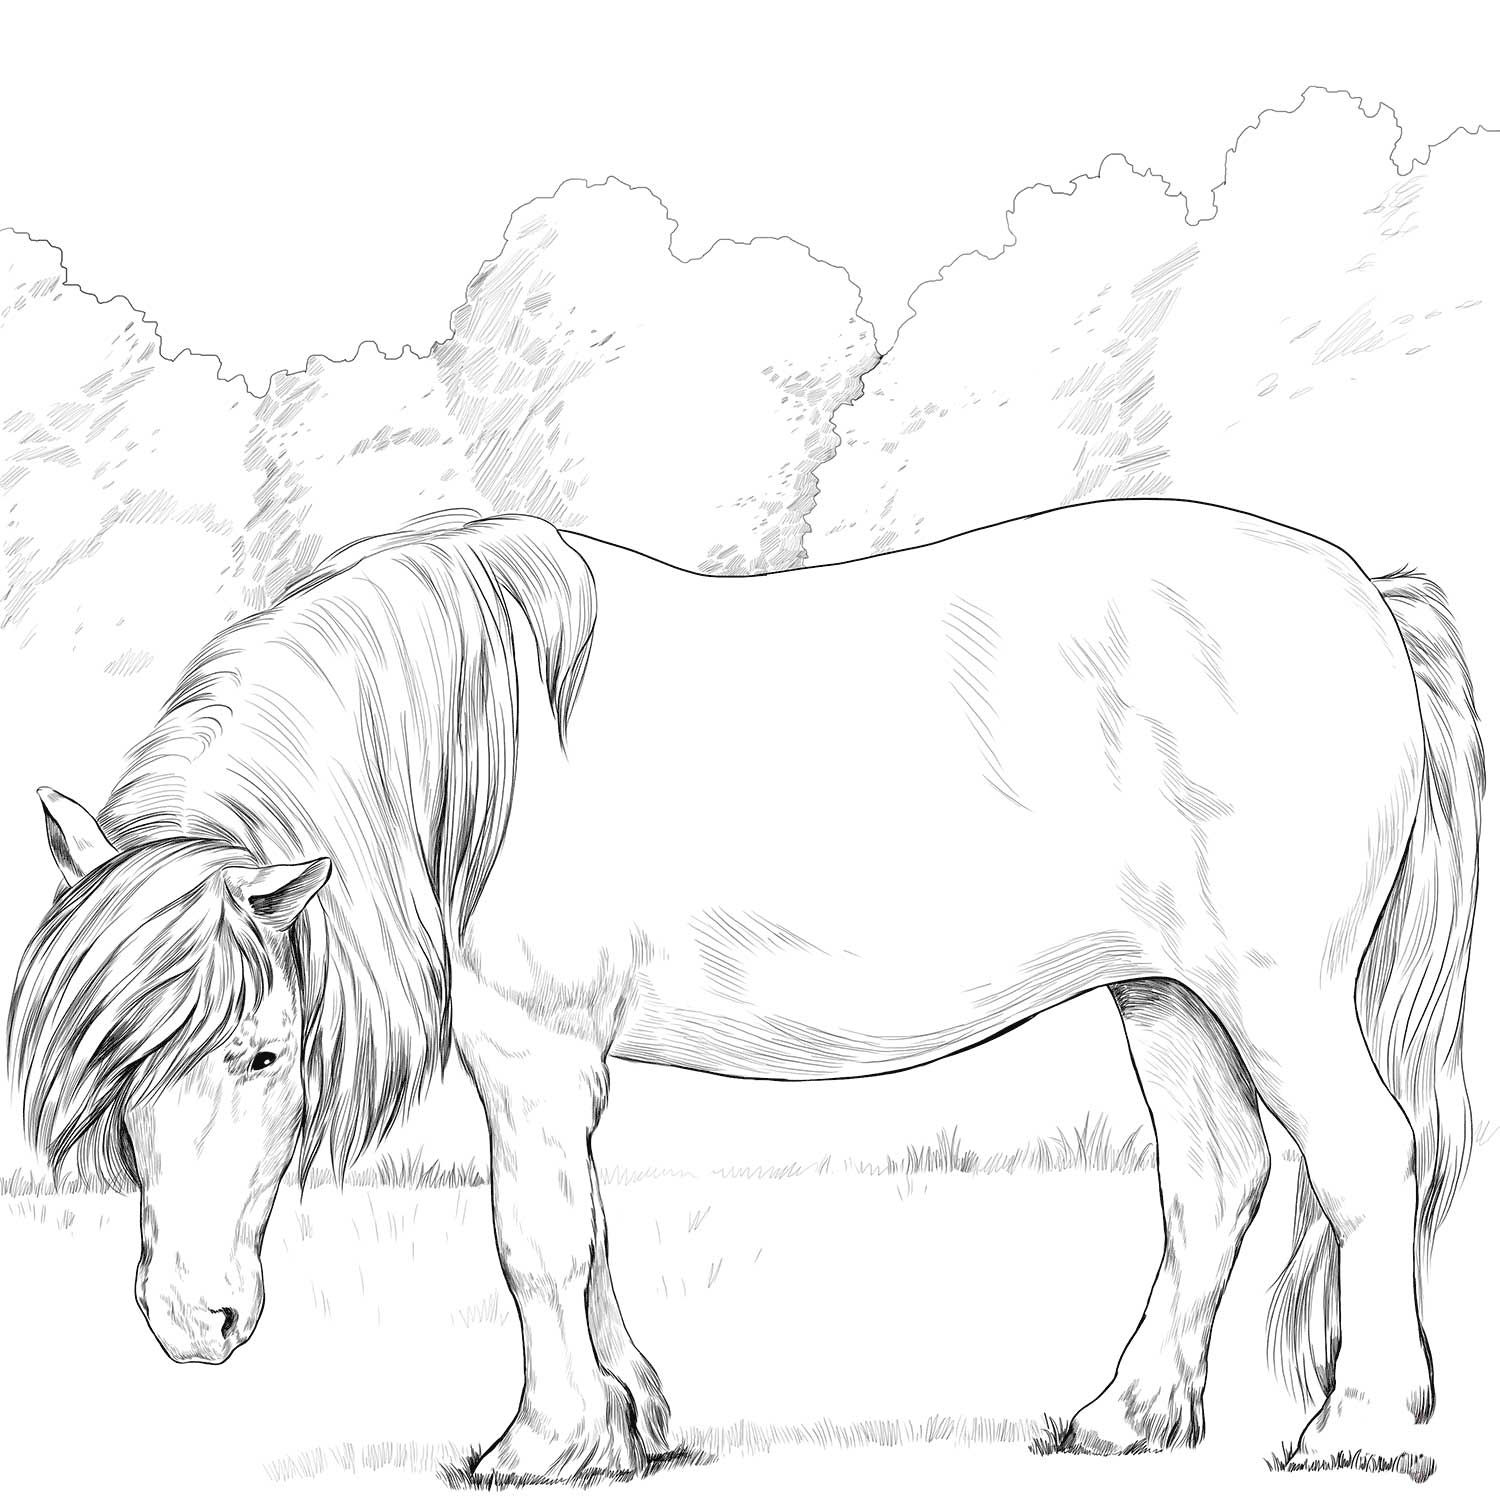 Shetland Pony Coloring Page Horse Coloring Pages Coloring Pages Horses Horse Coloring Books